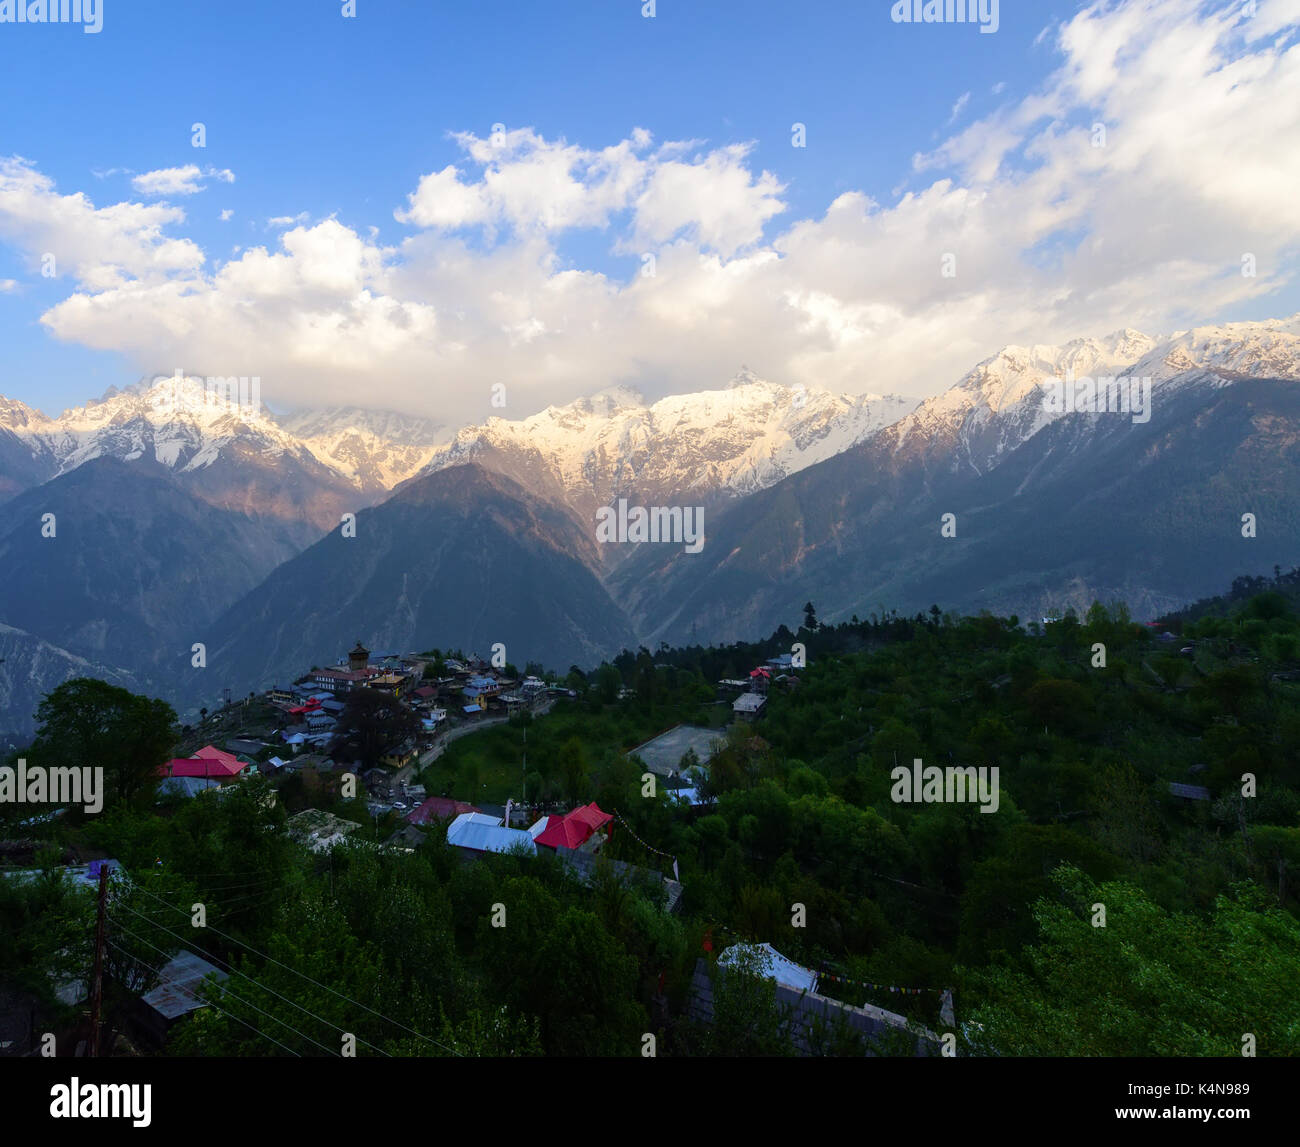 Kalpa village and Kinnaur Kailash sacred peak at sunrise view - Stock Image